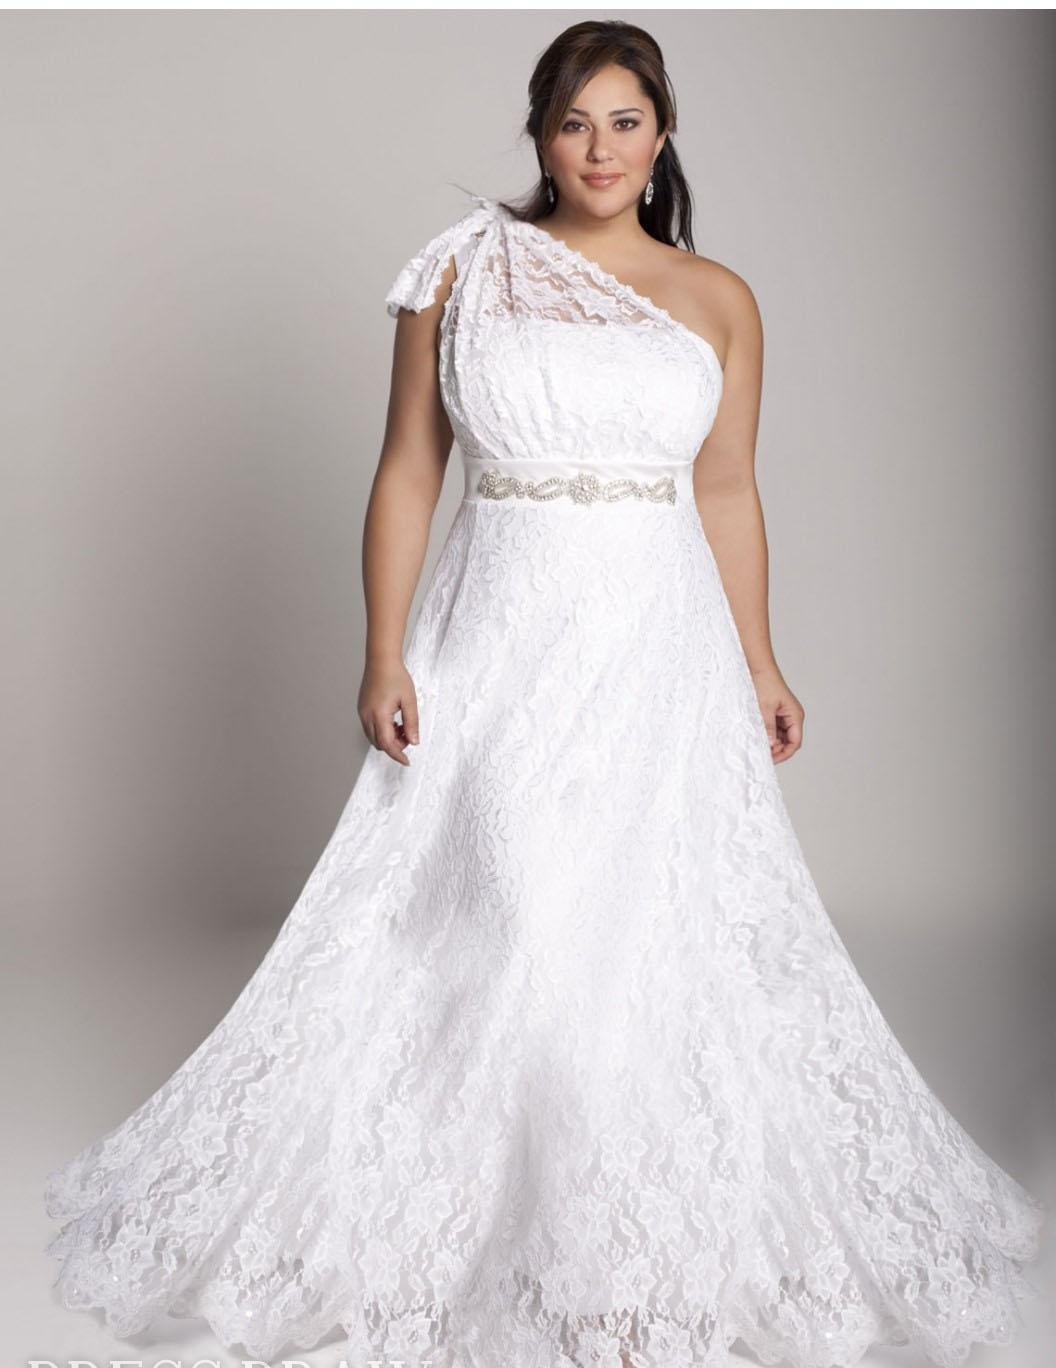 2015 Plus Size Lace Wedding Dresses One Shoulder A Line Bridal Dresses  Floor Length Long Garden Wedding Gowns with Beaded Sash